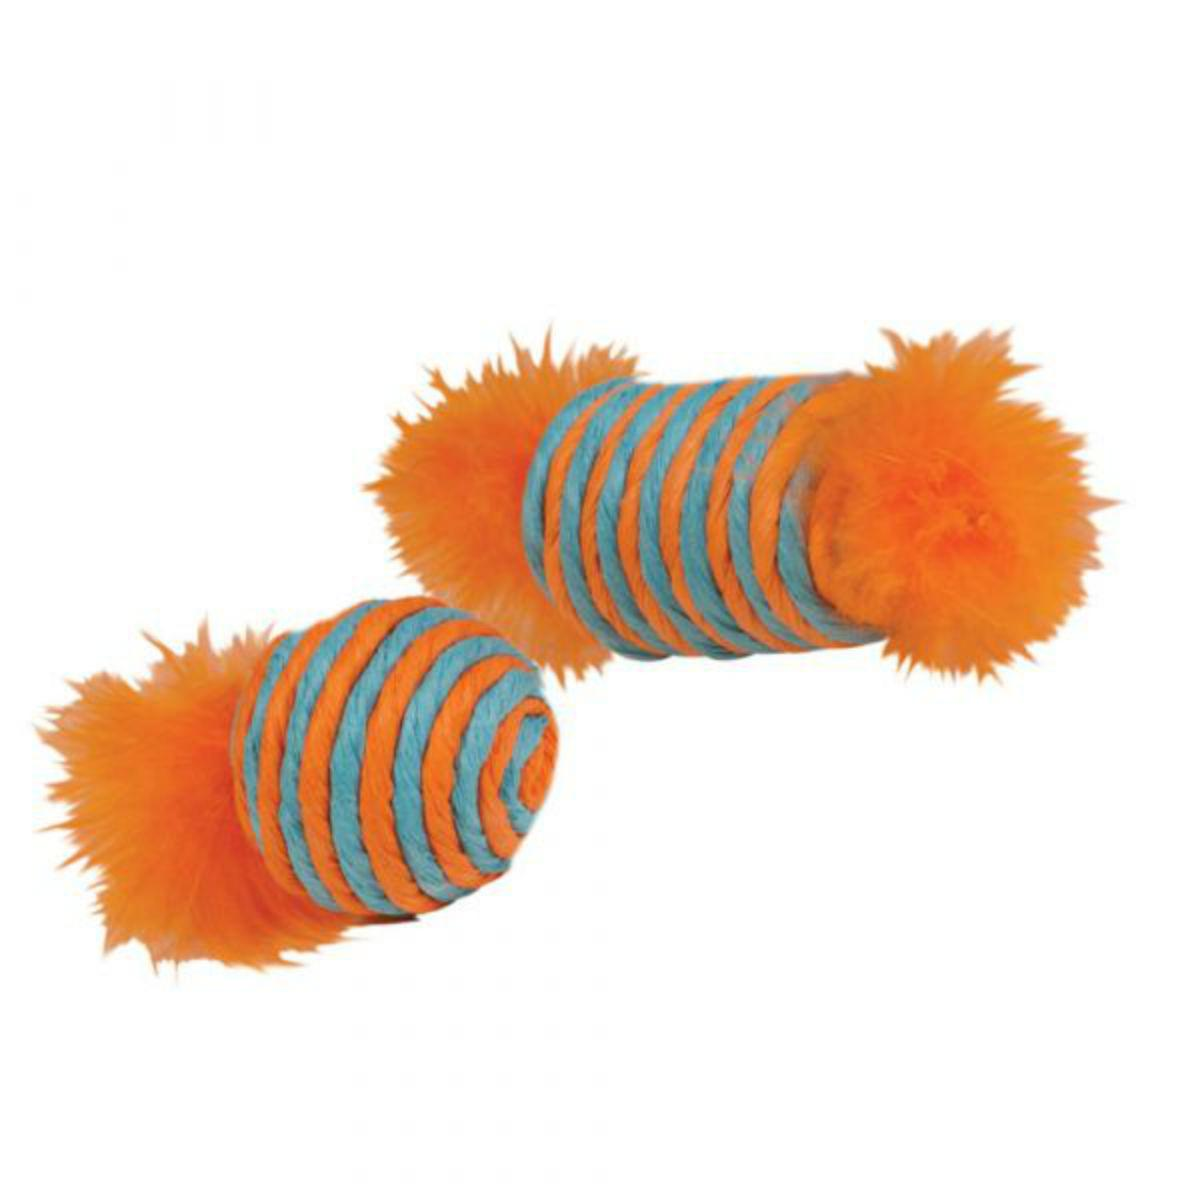 Kylie's Brights Raffia Spool and Ball with Feathers Cat Toy - 2 Pack